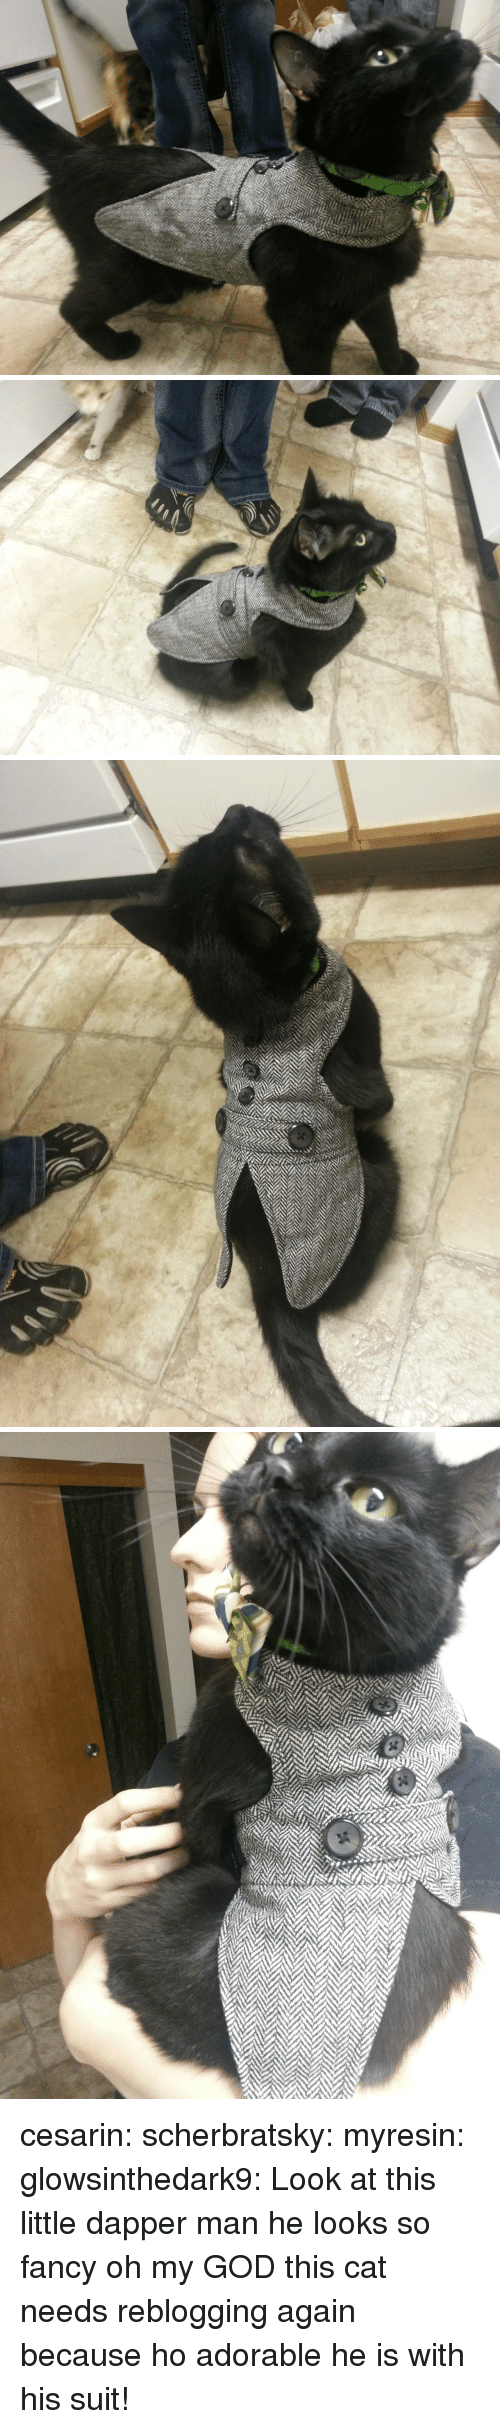 God, Oh My God, and Target: cesarin: scherbratsky:  myresin:  glowsinthedark9:  Look at this little dapper man  he looks so fancy  oh my GOD  this cat needs reblogging again because ho adorable he is with his suit!